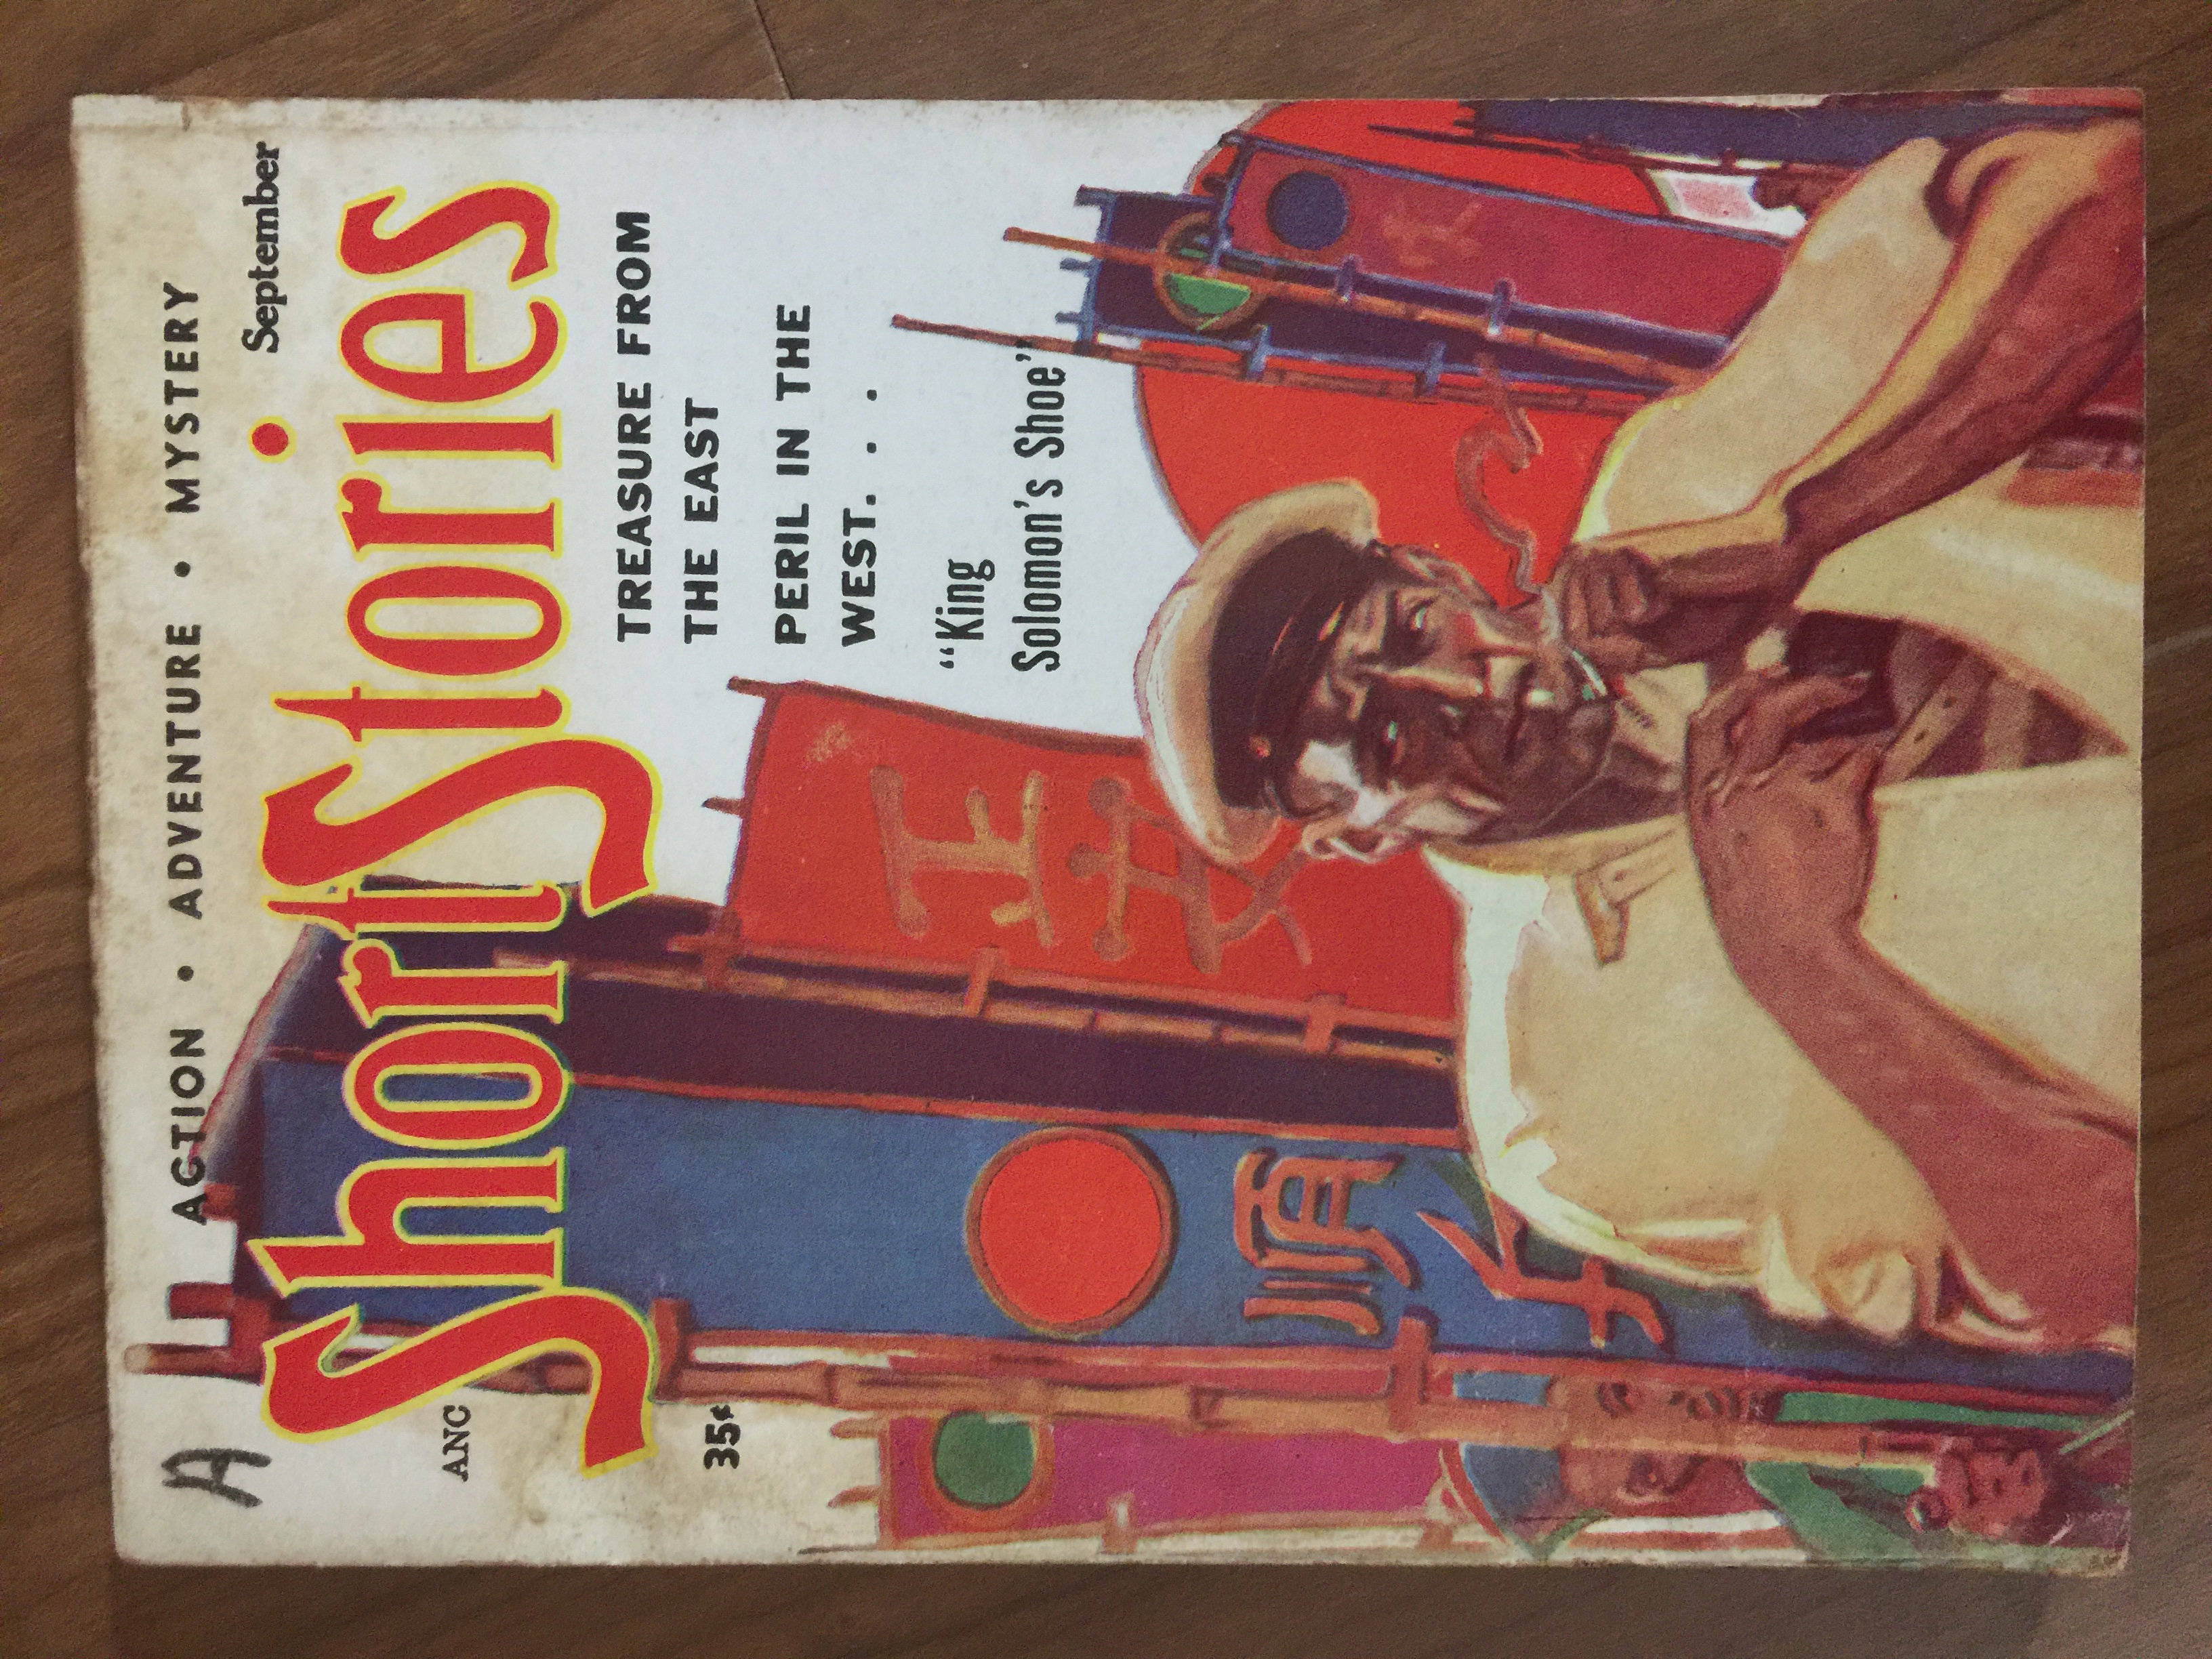 1953 July last digest-sized issue of Short Stories edited by Dorothy McIlwraith